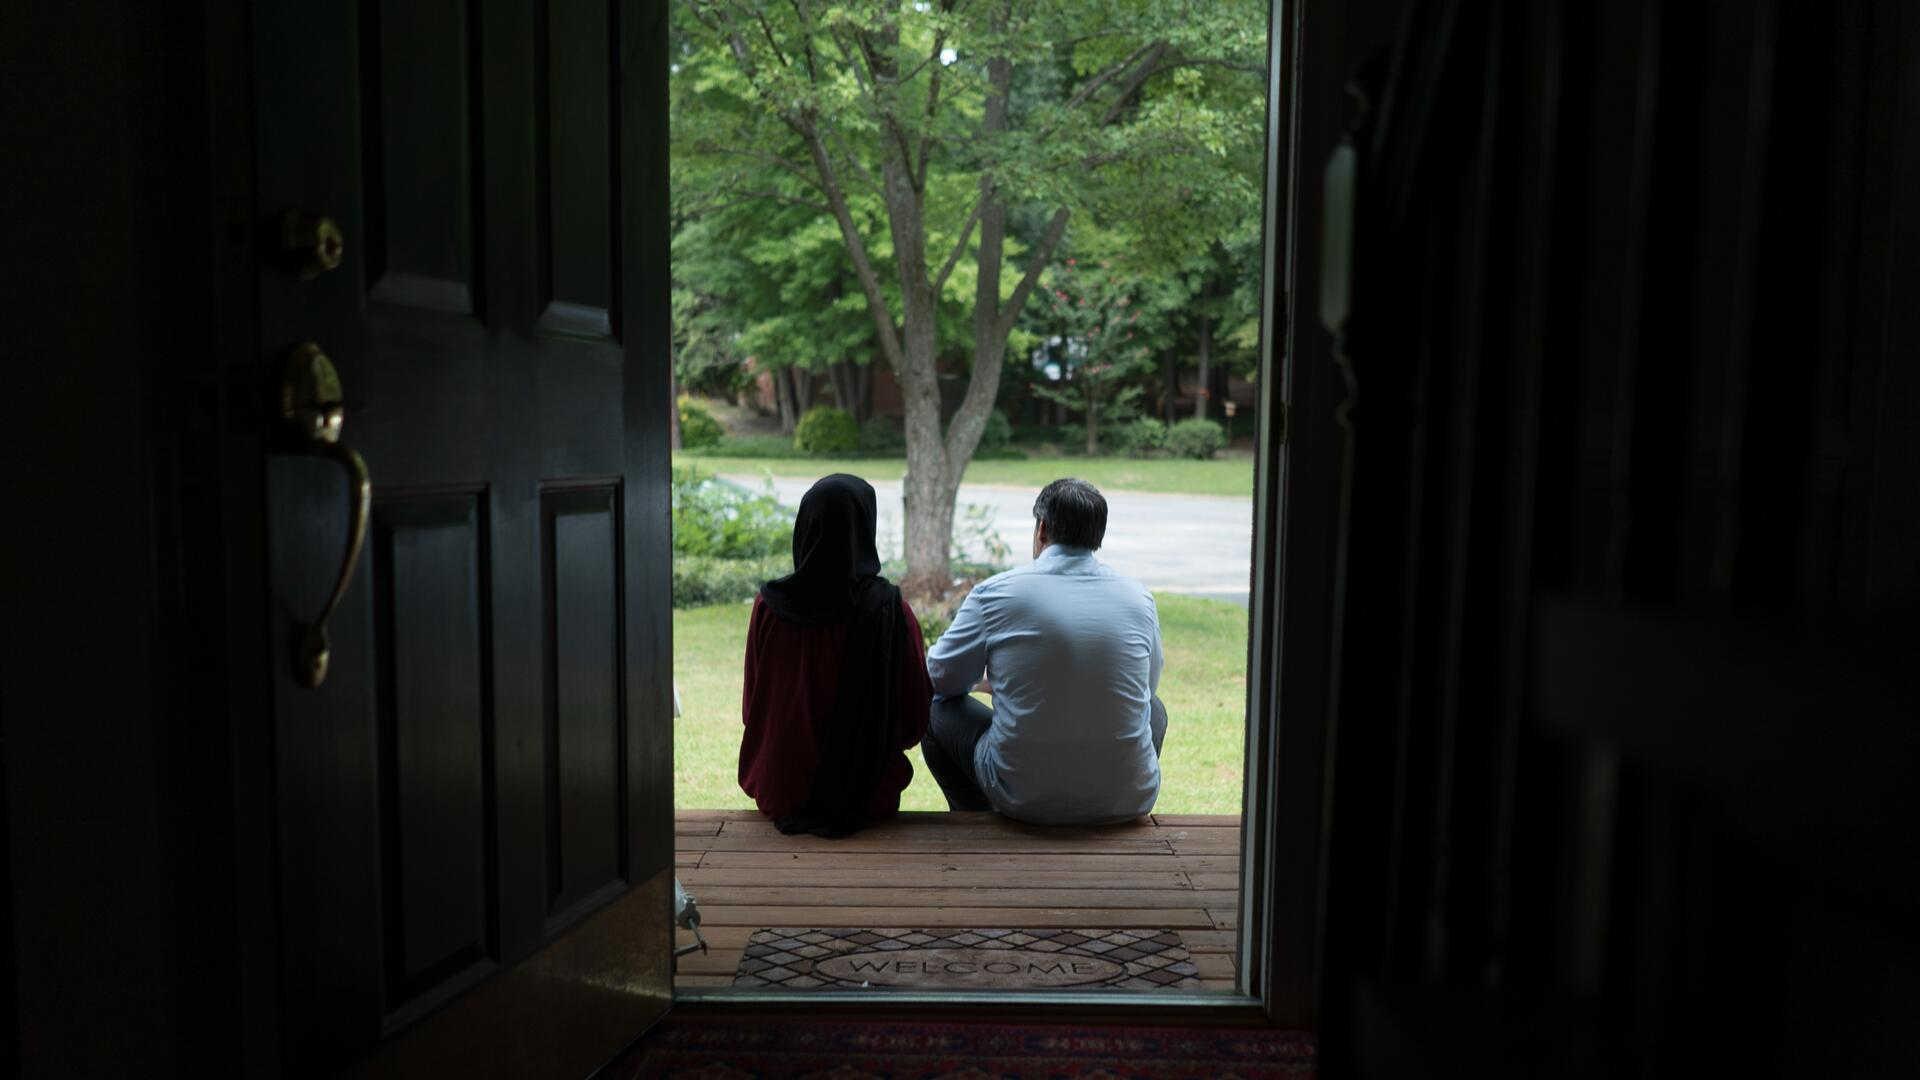 Afghan refugees Fatima, 19, and her father Abdul, 52, sit on the wooden front steps of a Virginia house looking out at the trees in the yard